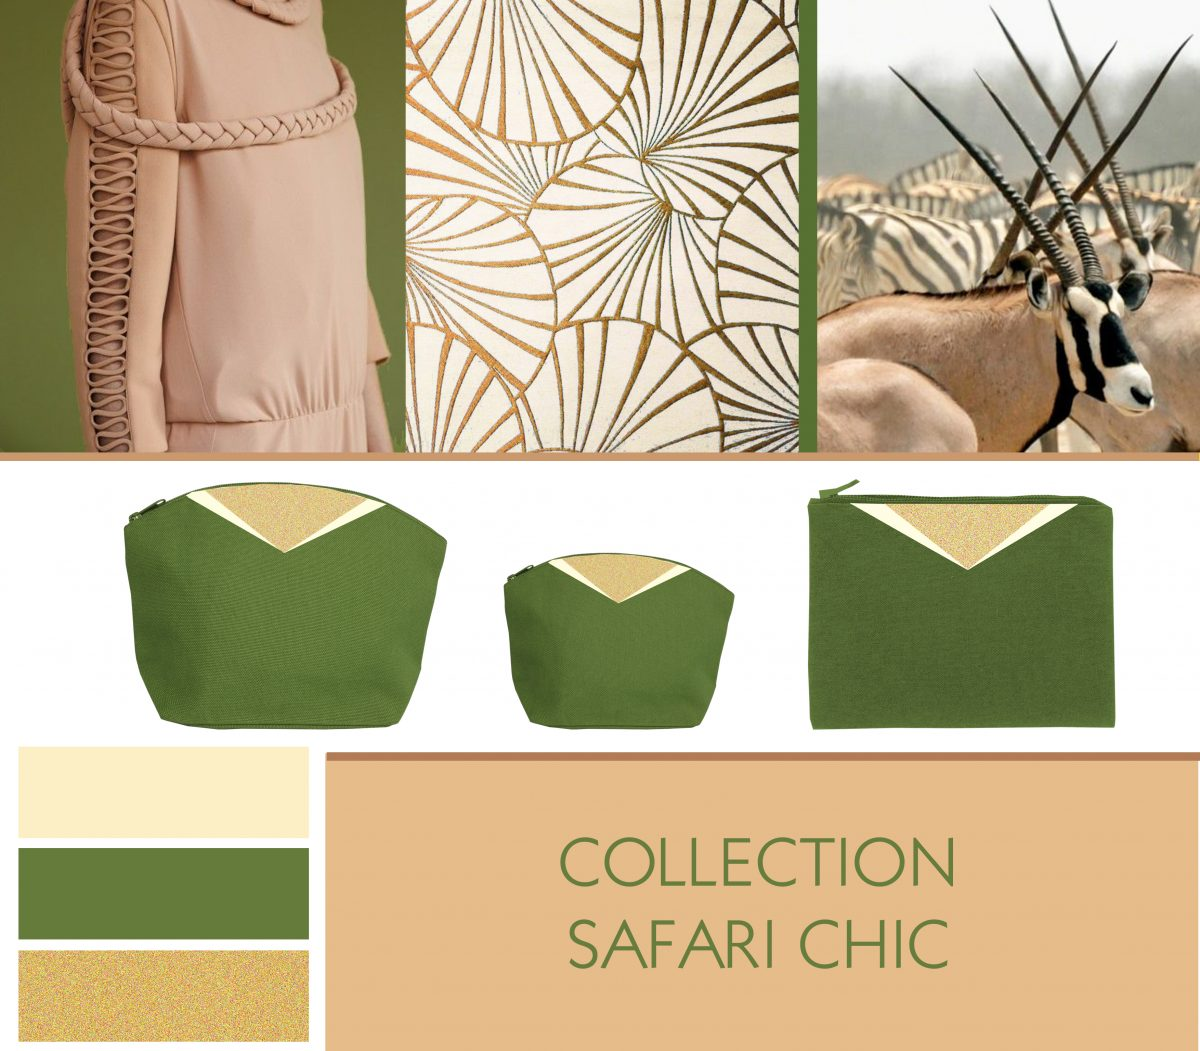 Collection safari chic-Mouettes Vertes